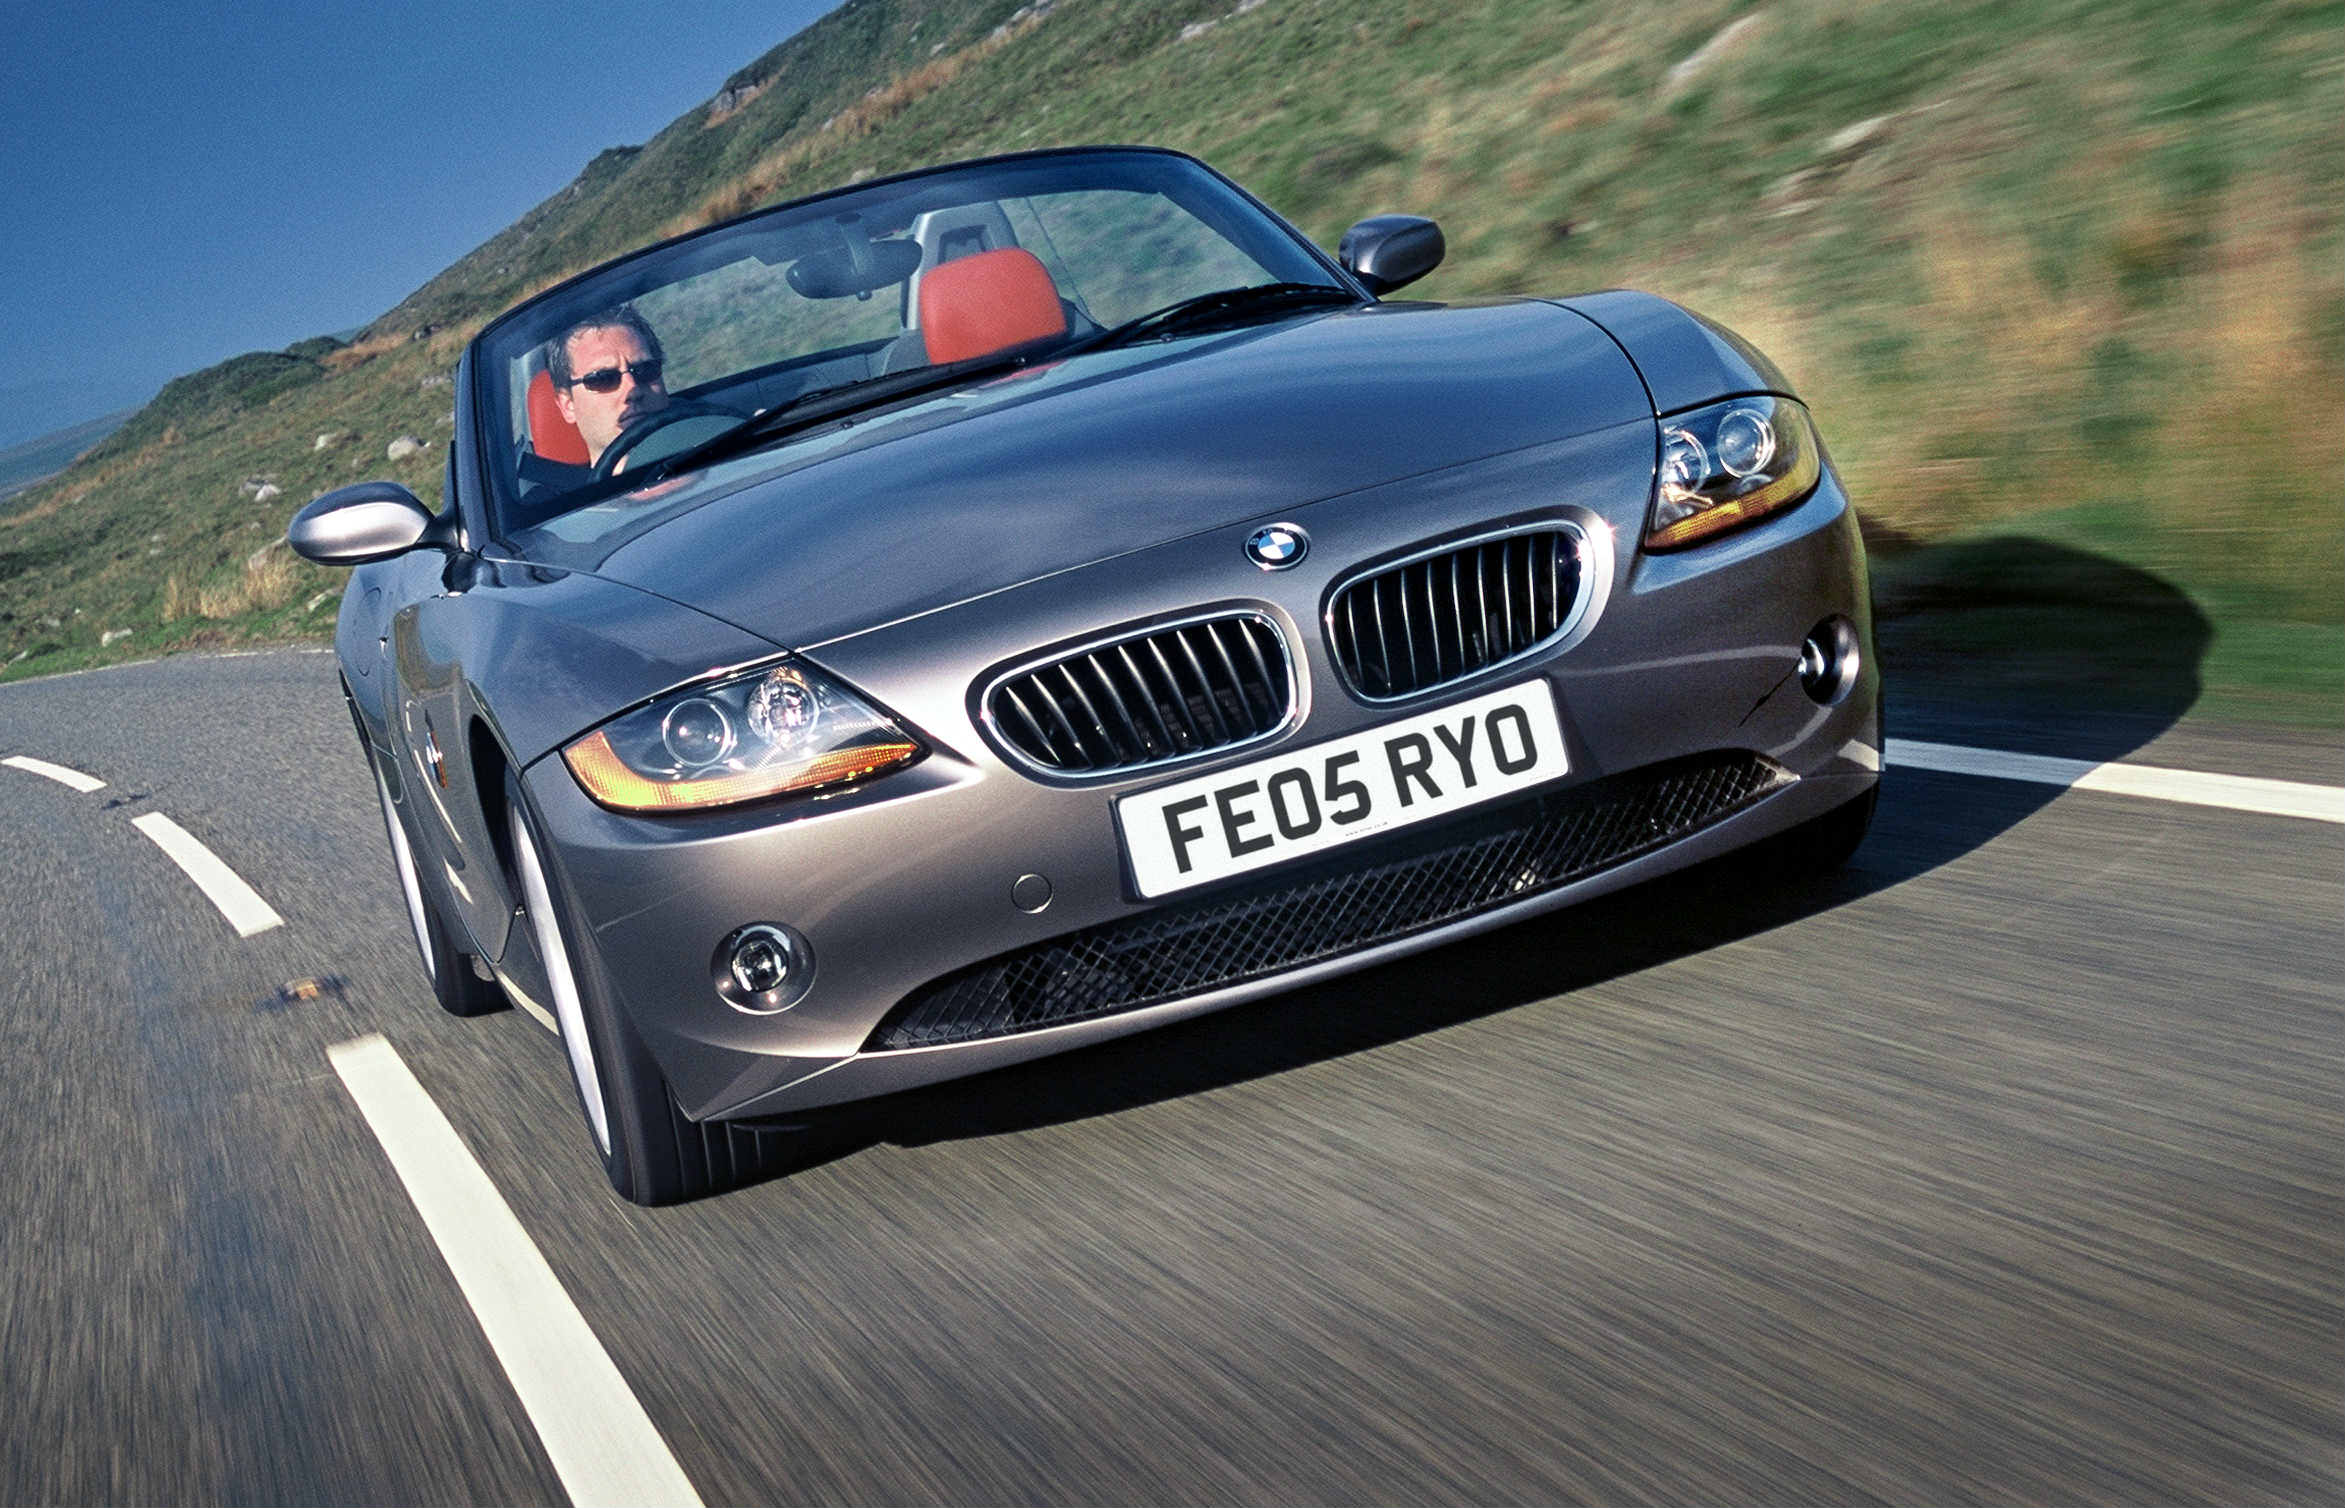 Best second cars - BMW Z4 Roadstar